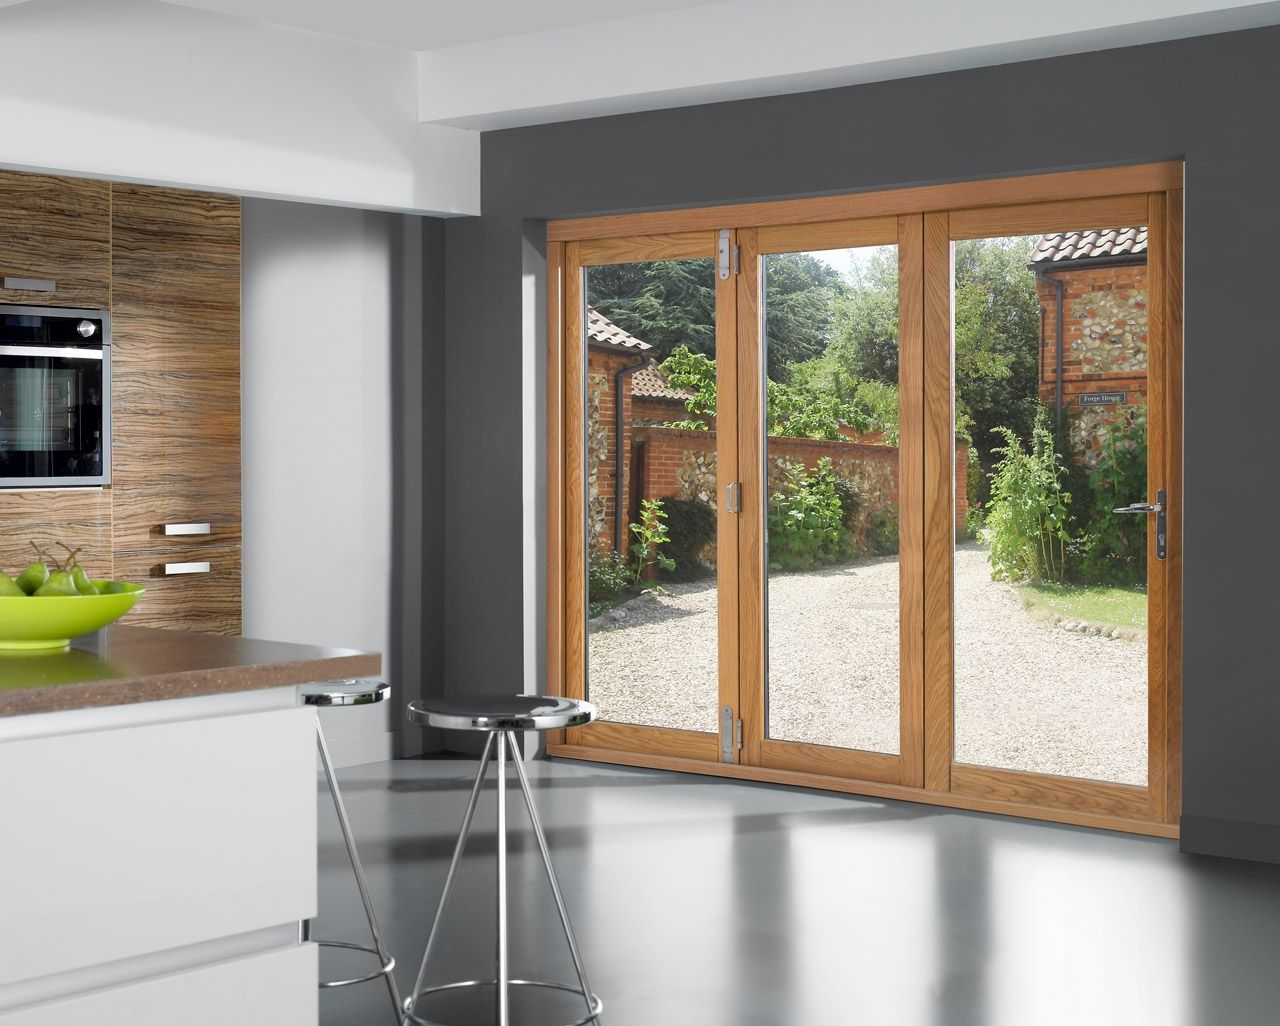 12 Foot Sliding Glass Patio Doors Folding Patio Doors Bifold Patio Doors Hinged Patio Doors